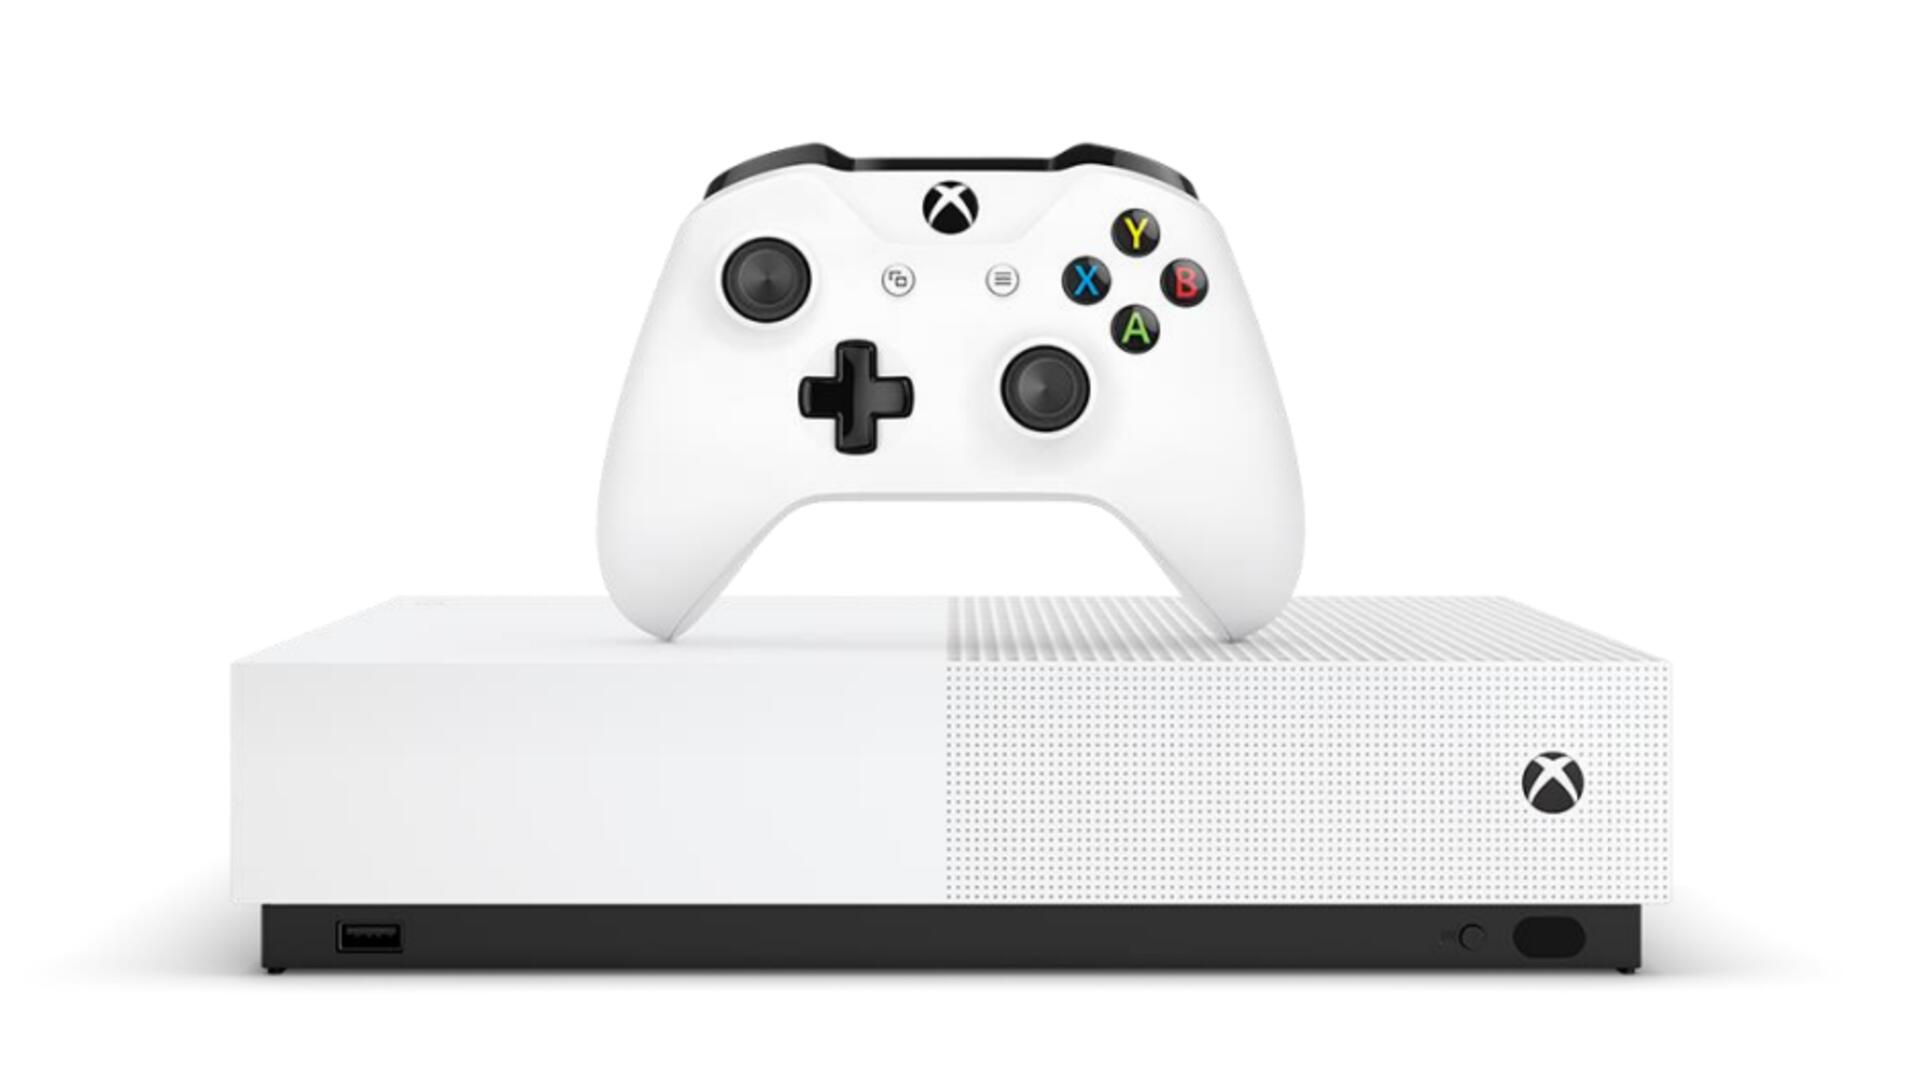 Xbox One S All-Digital Drops the Disc Drive But Still Costs a Cool $250